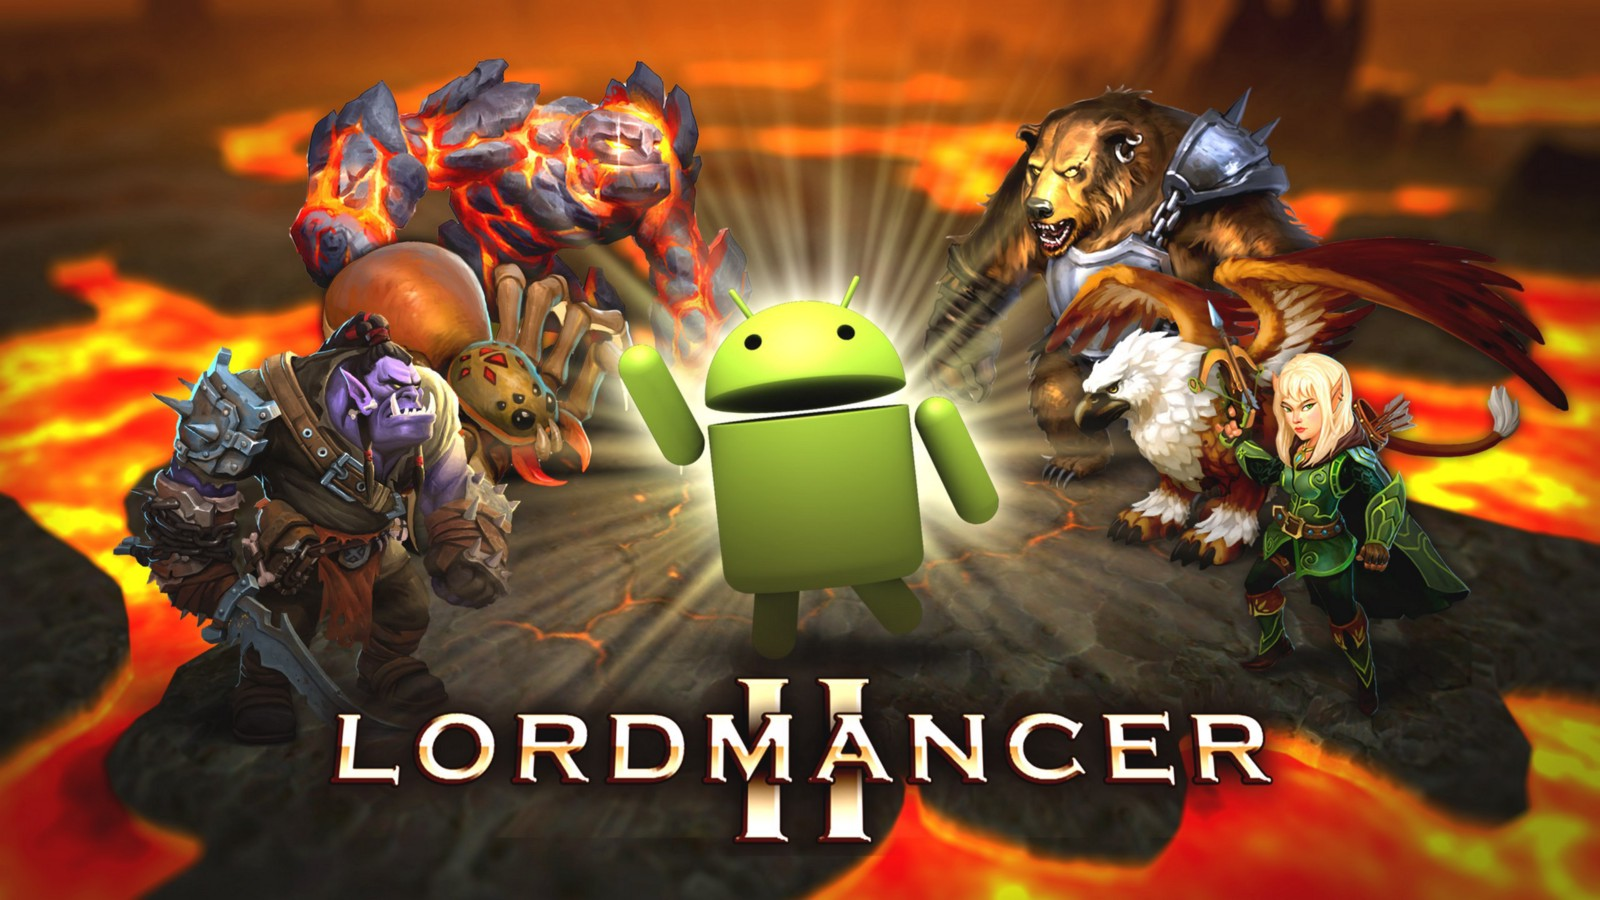 Top 6 best MMORPG Games for Android in 2020